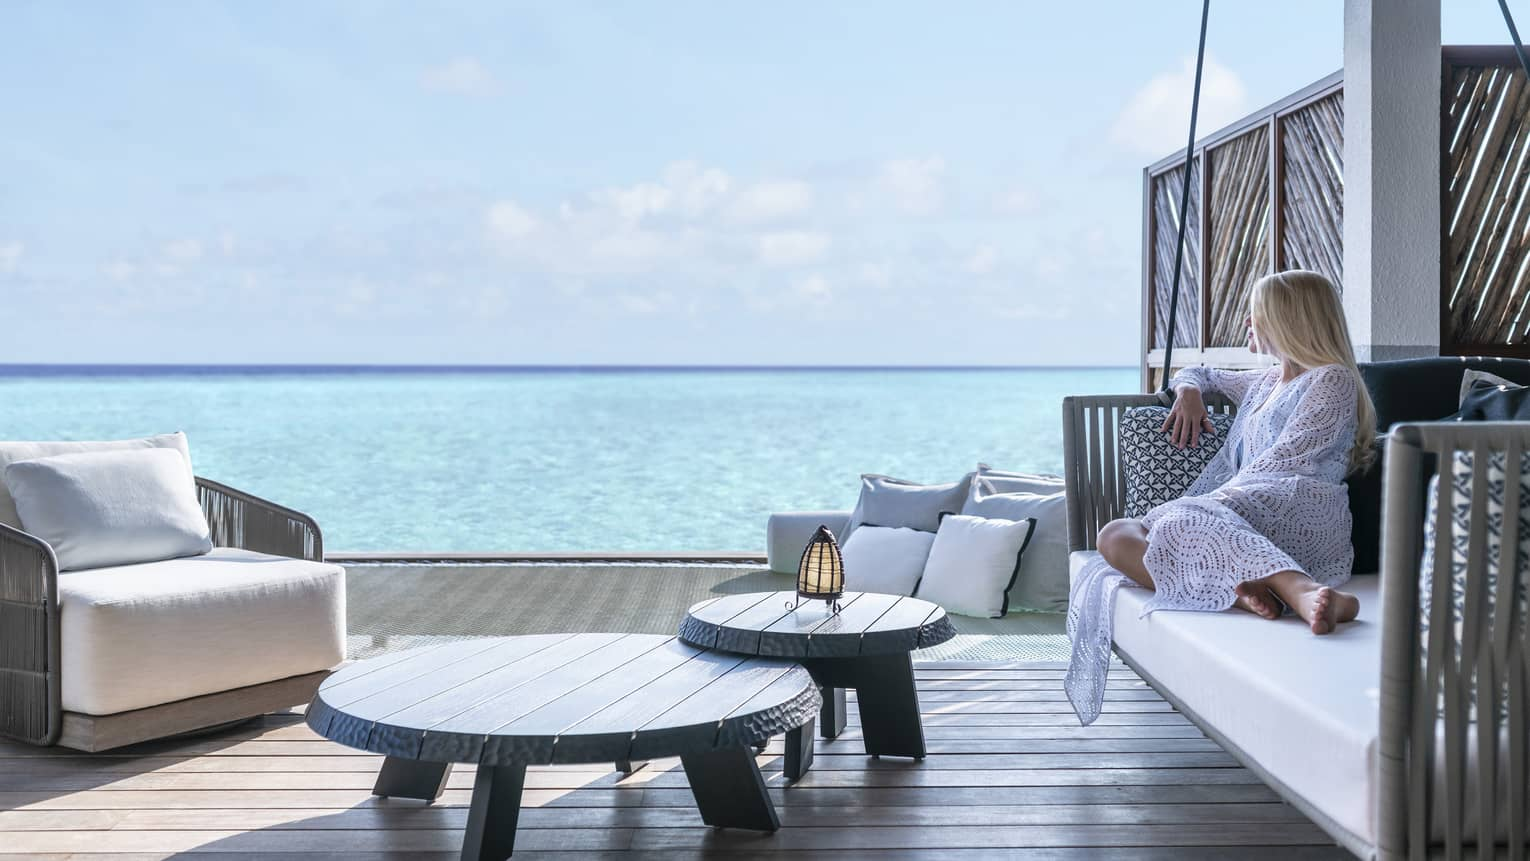 A guest relaxes on a swinging bench on a patio overlooking the ocean